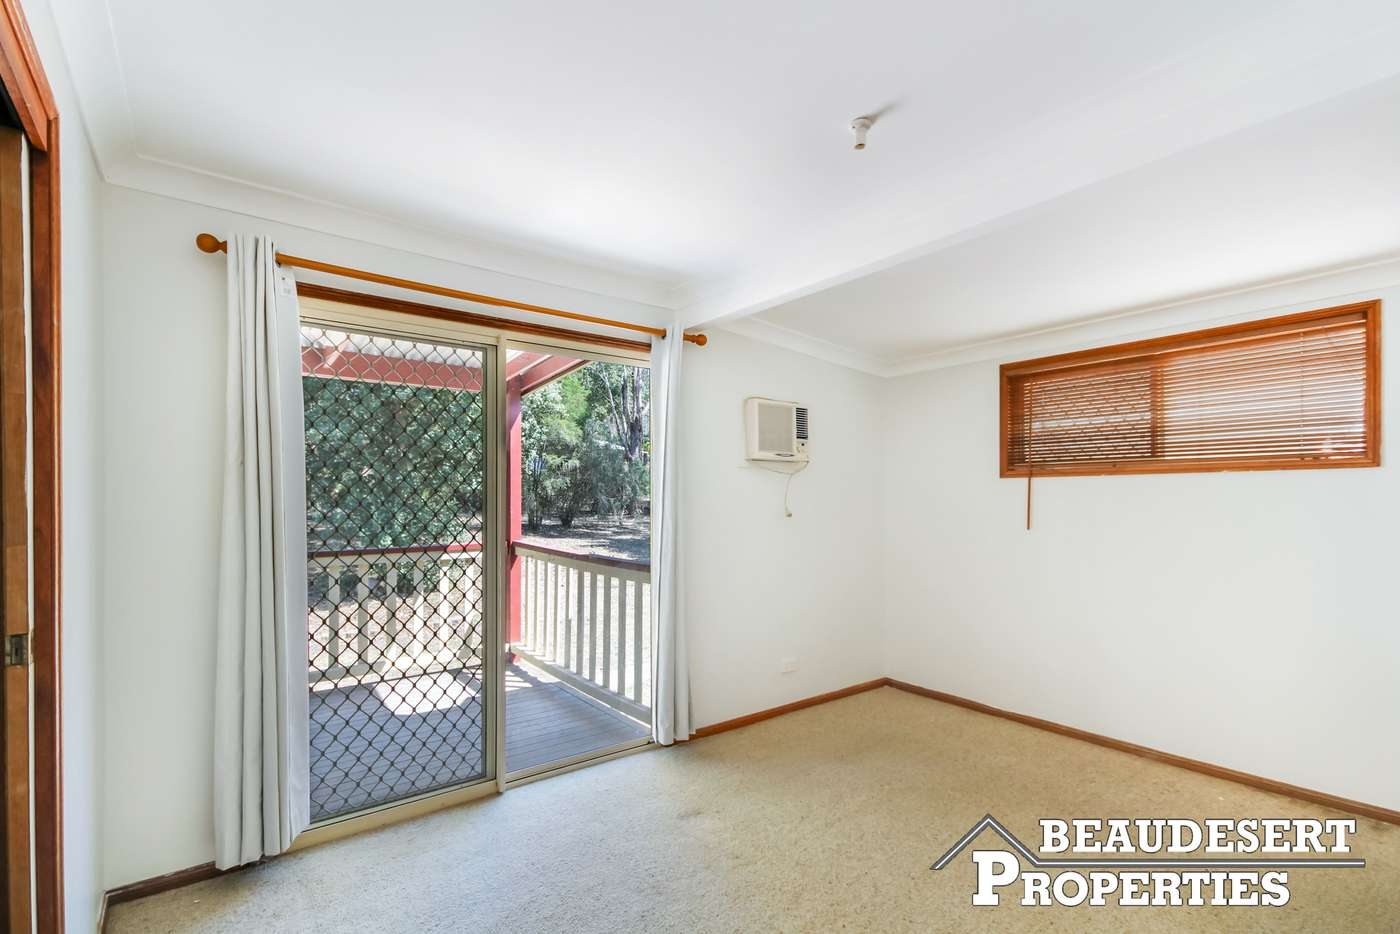 Sixth view of Homely house listing, 14-20 Couldery Court, Cedar Grove QLD 4285